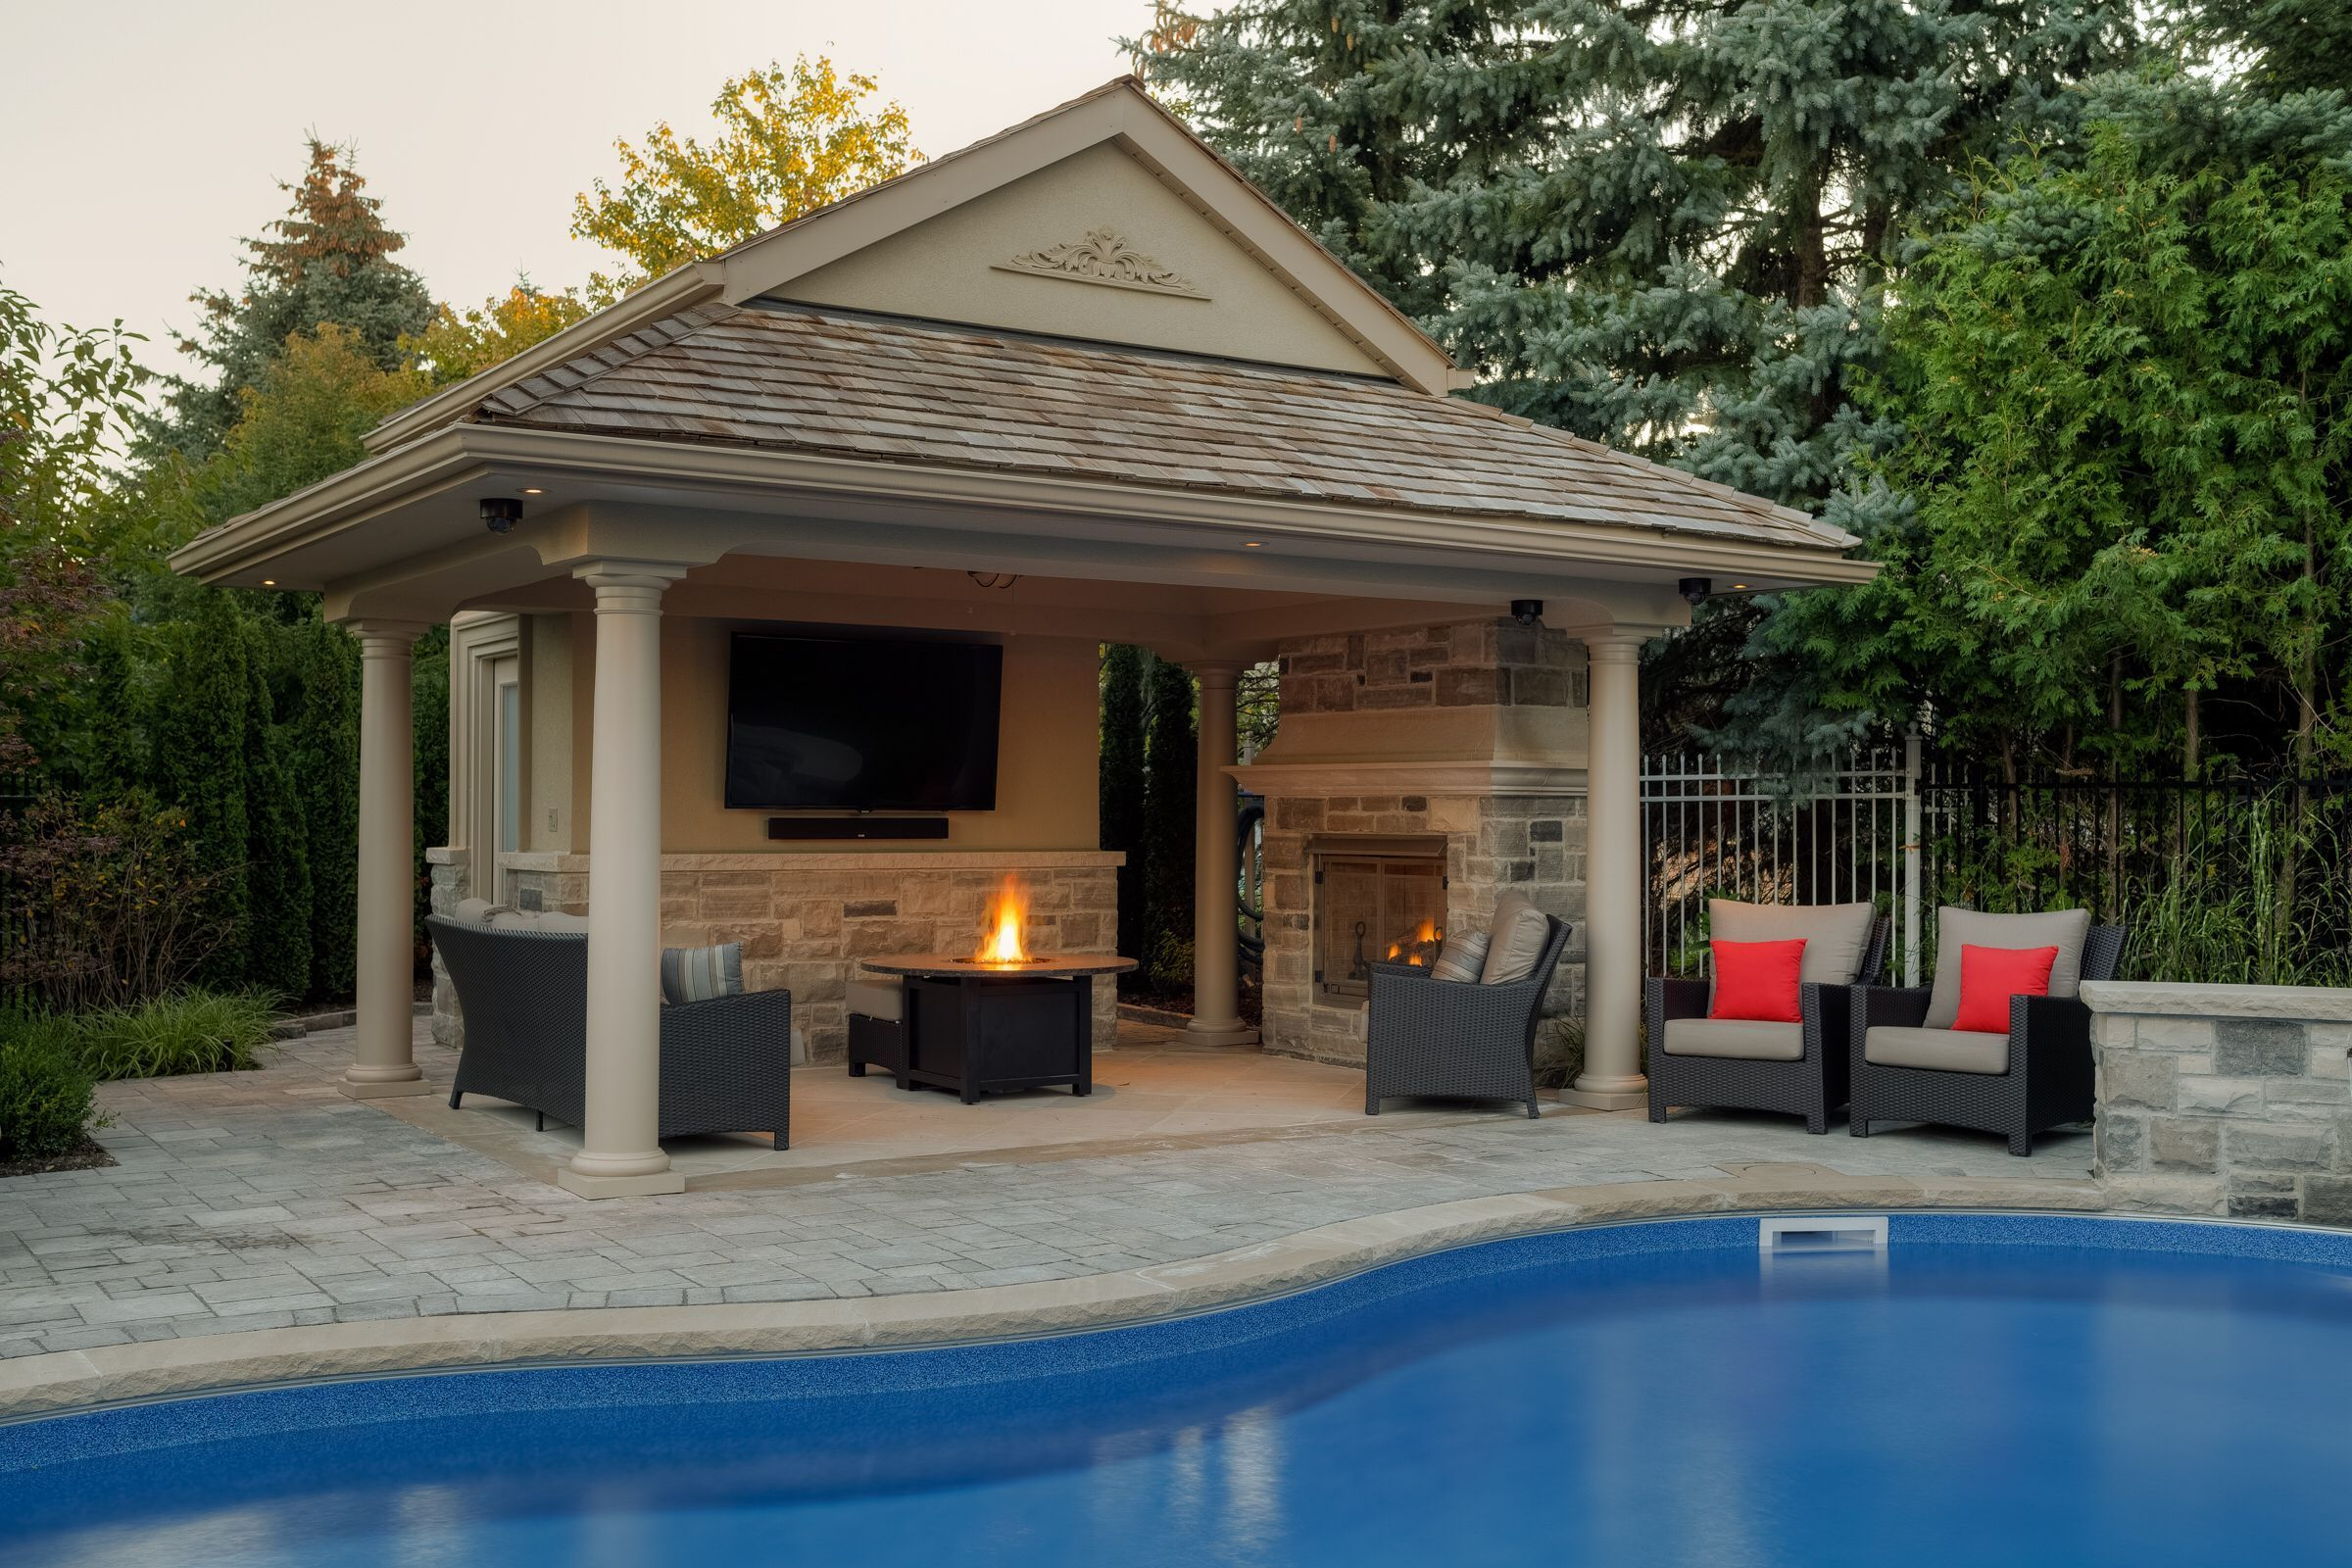 11 Clever Designs of How to Make Backyard Pool House Ideas  Pool